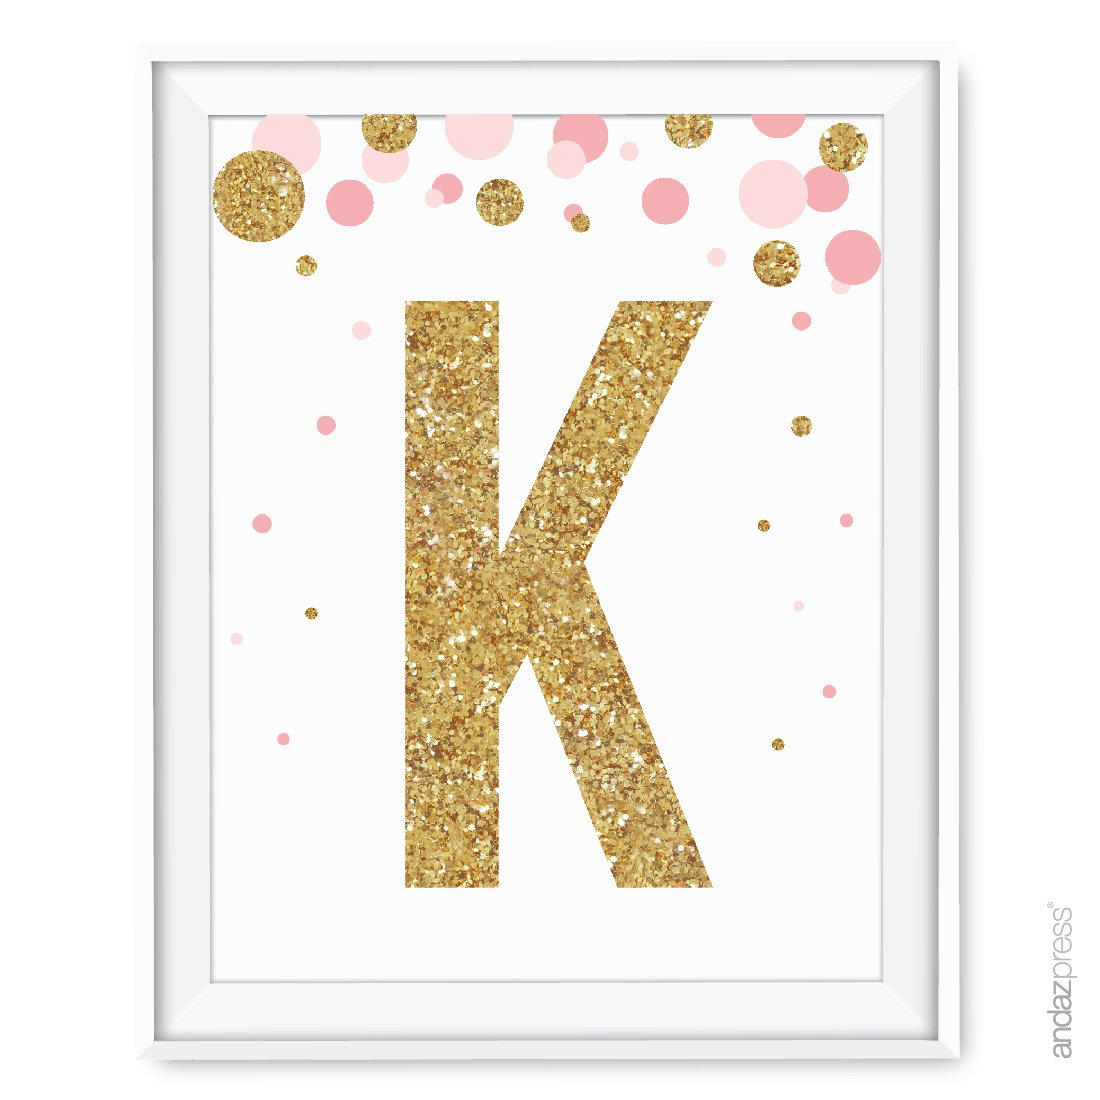 Andaz press nursery wall art decor pink and printed gold glitter letter k 8 5x11 inch 1 pack unframed prints poster